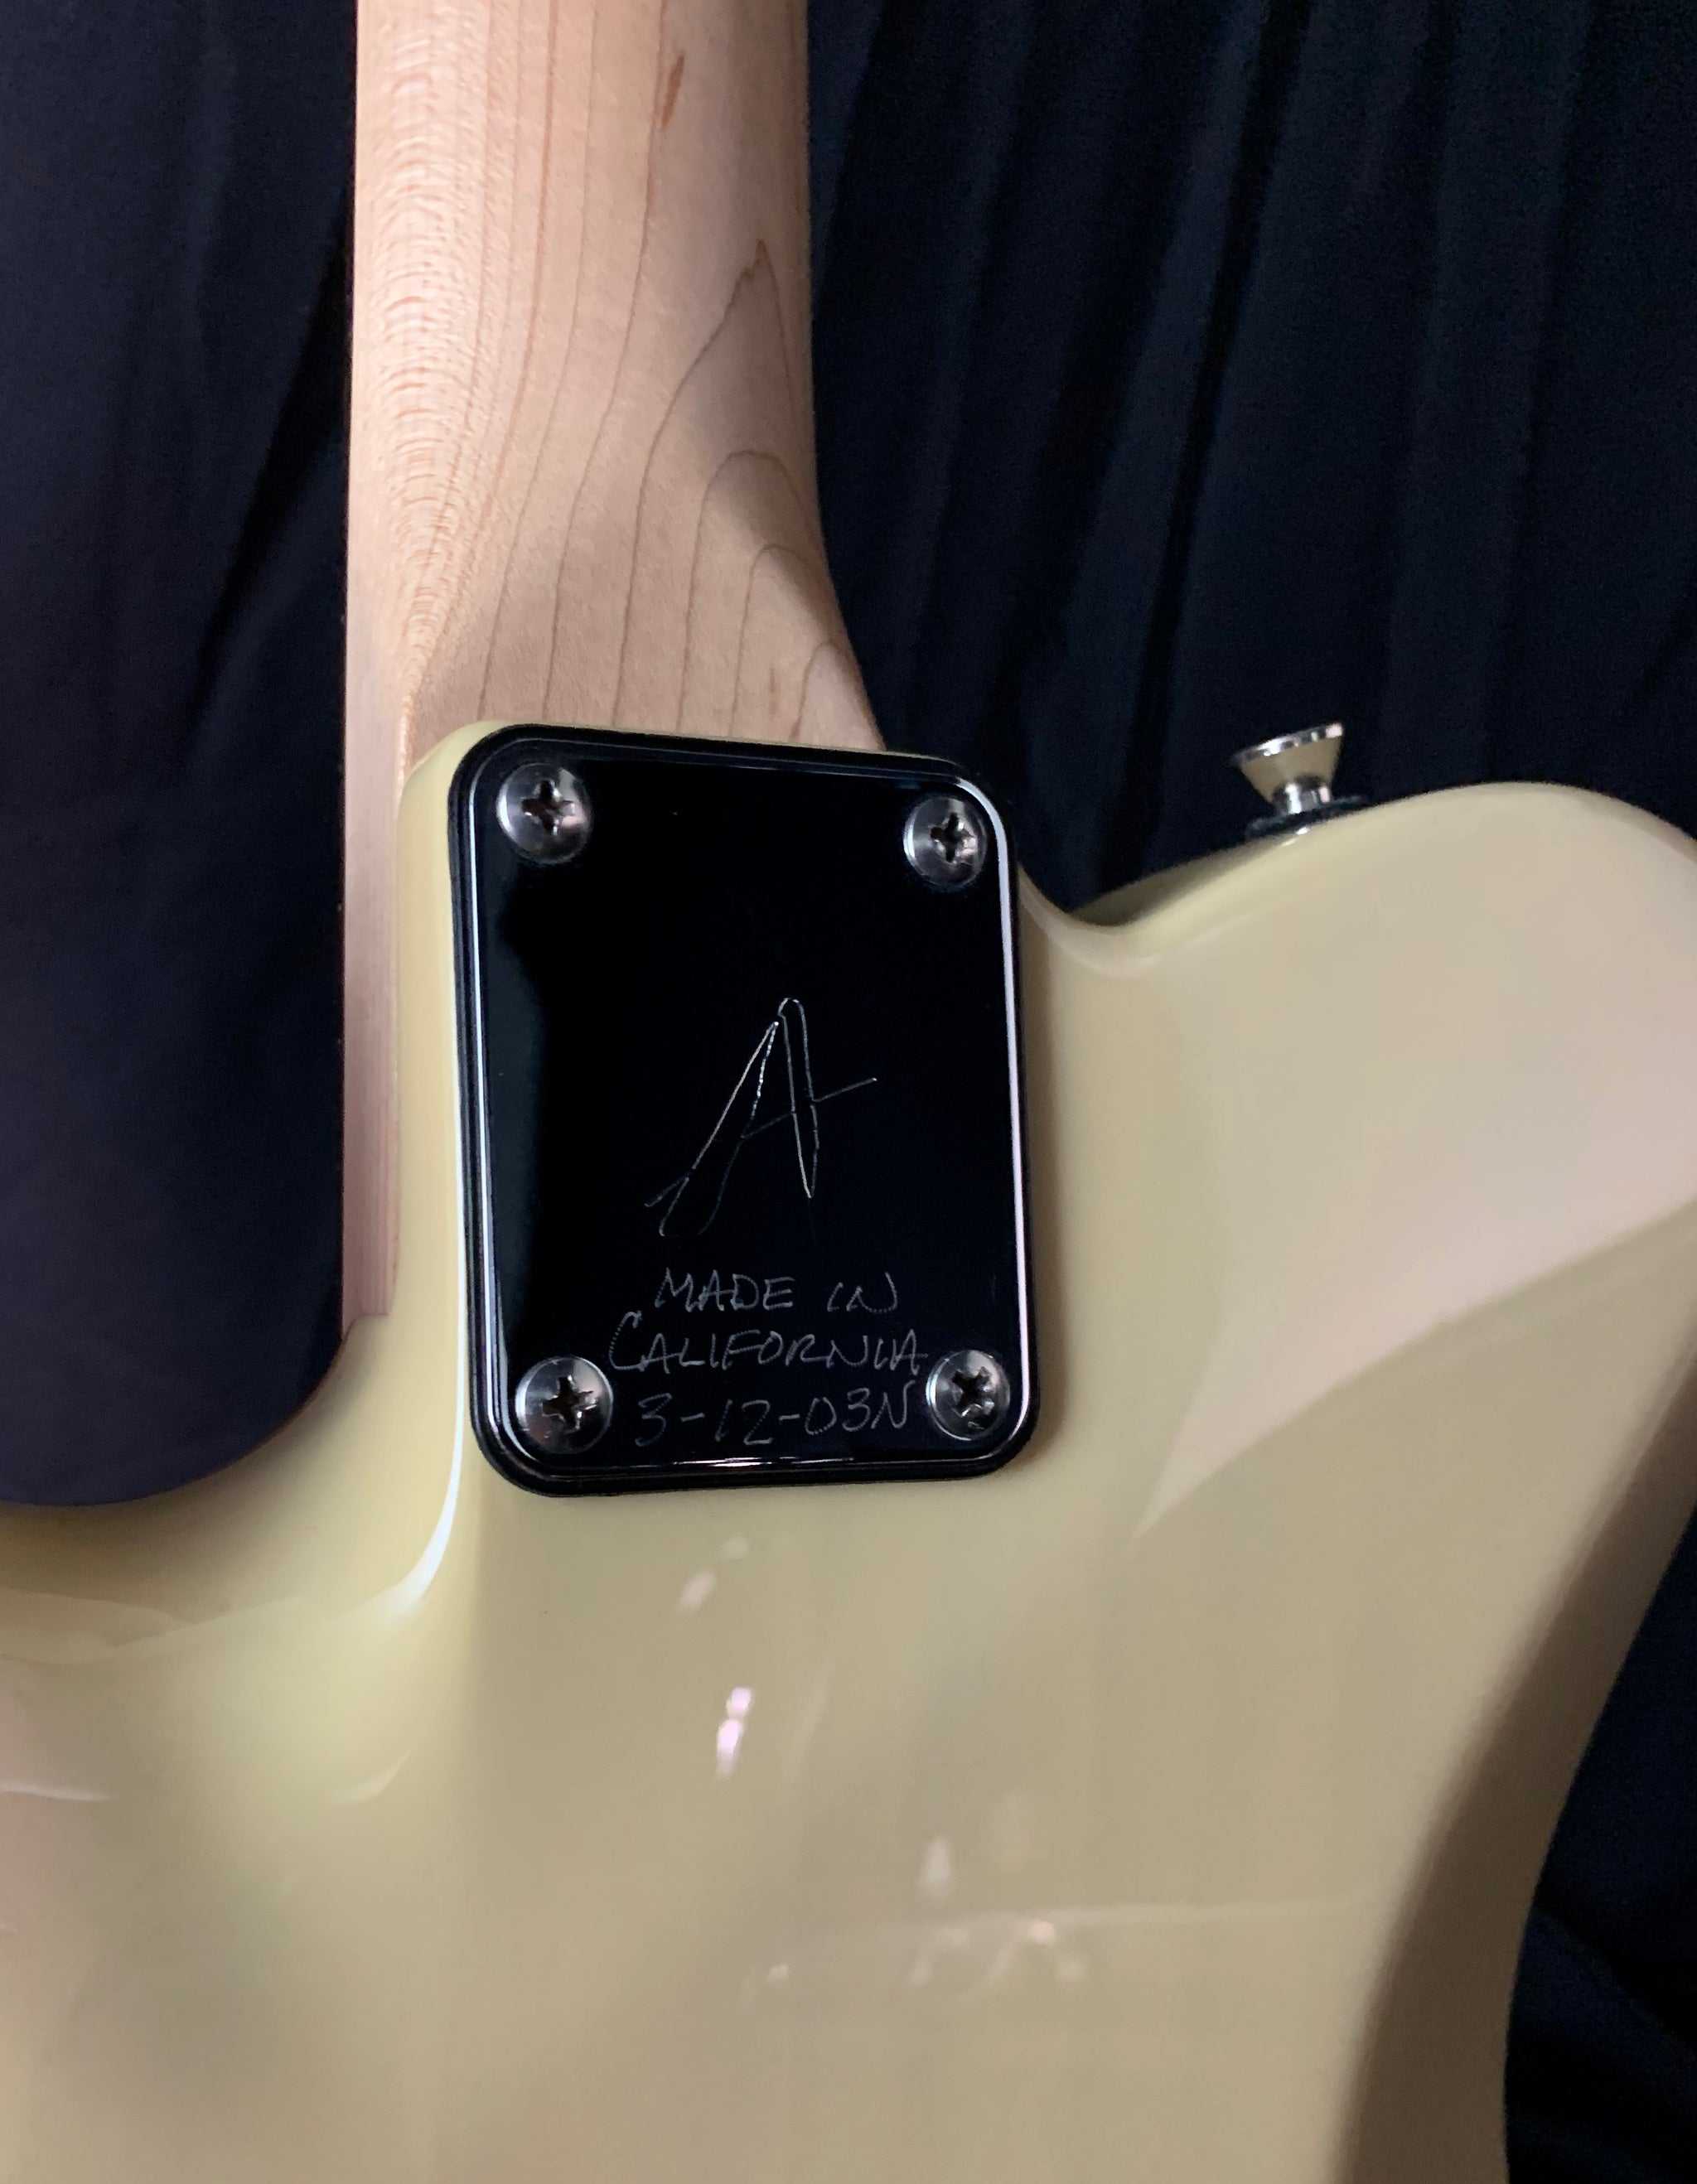 **** SOLD **** 2003 Tom Anderson Hollow T Drop Top